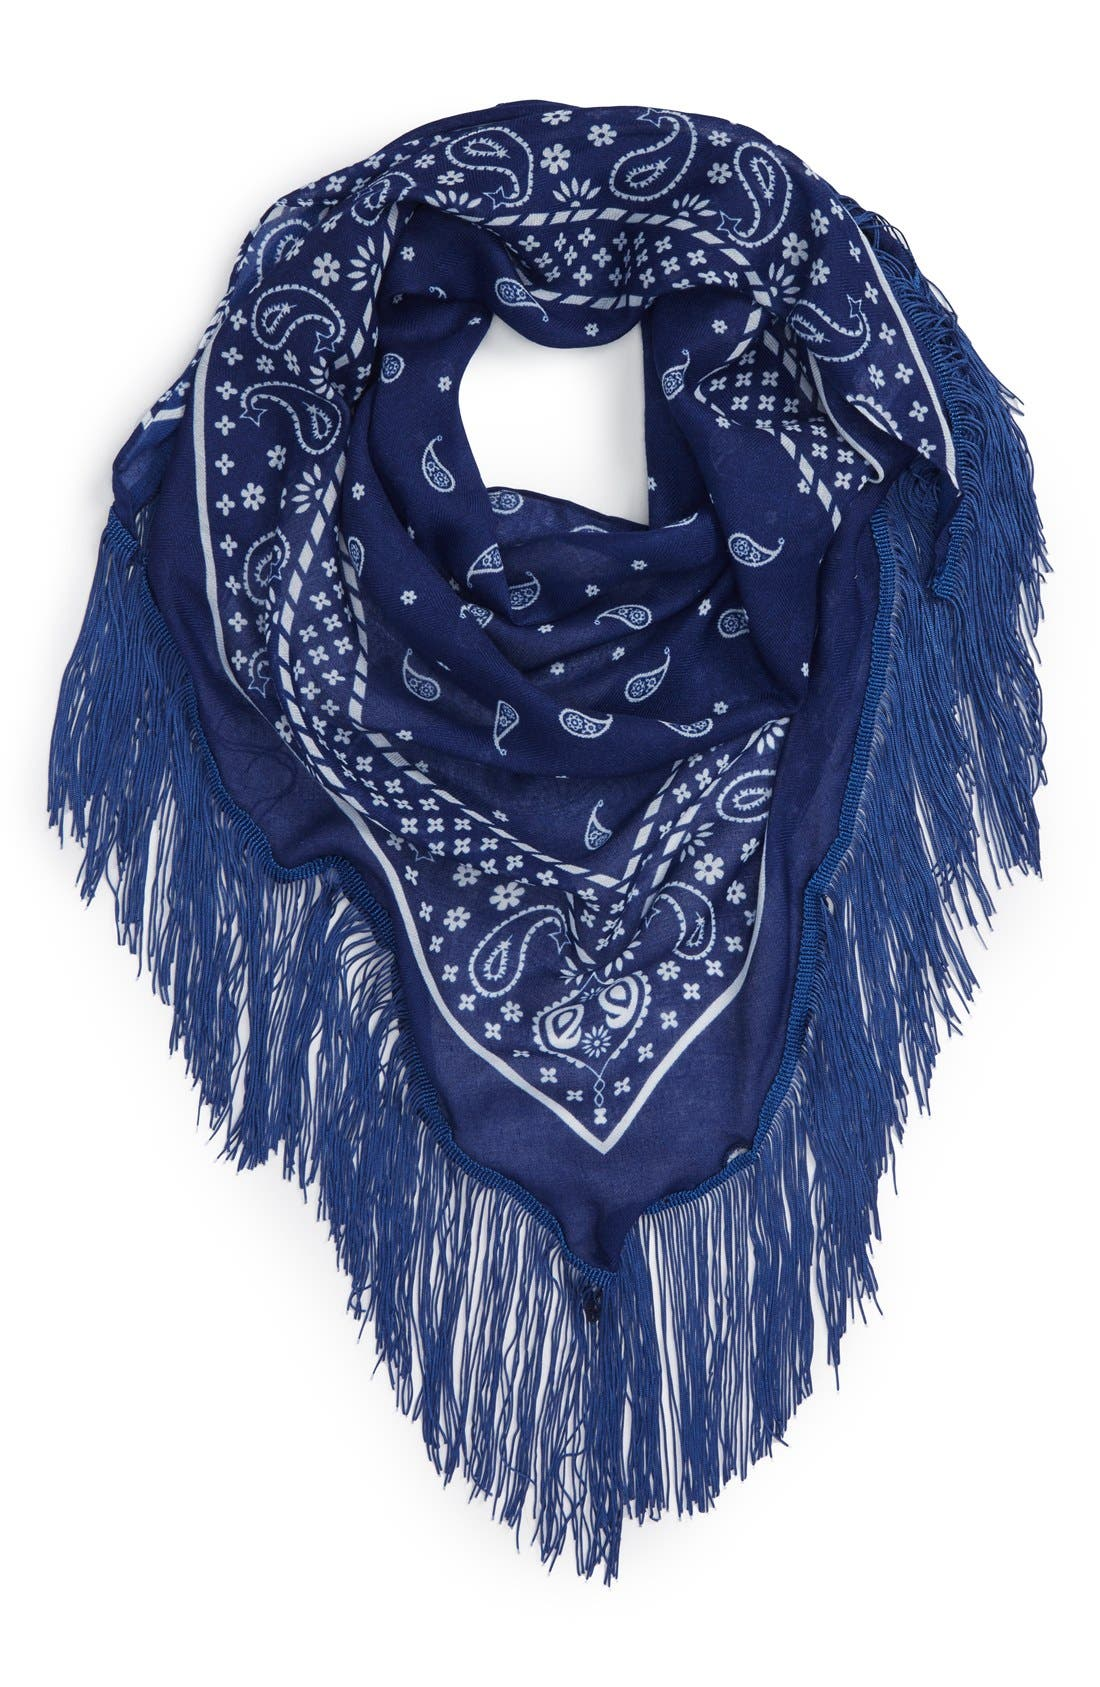 Alternate Image 1 Selected - BP. Paisley Print Fringe Triangle Scarf